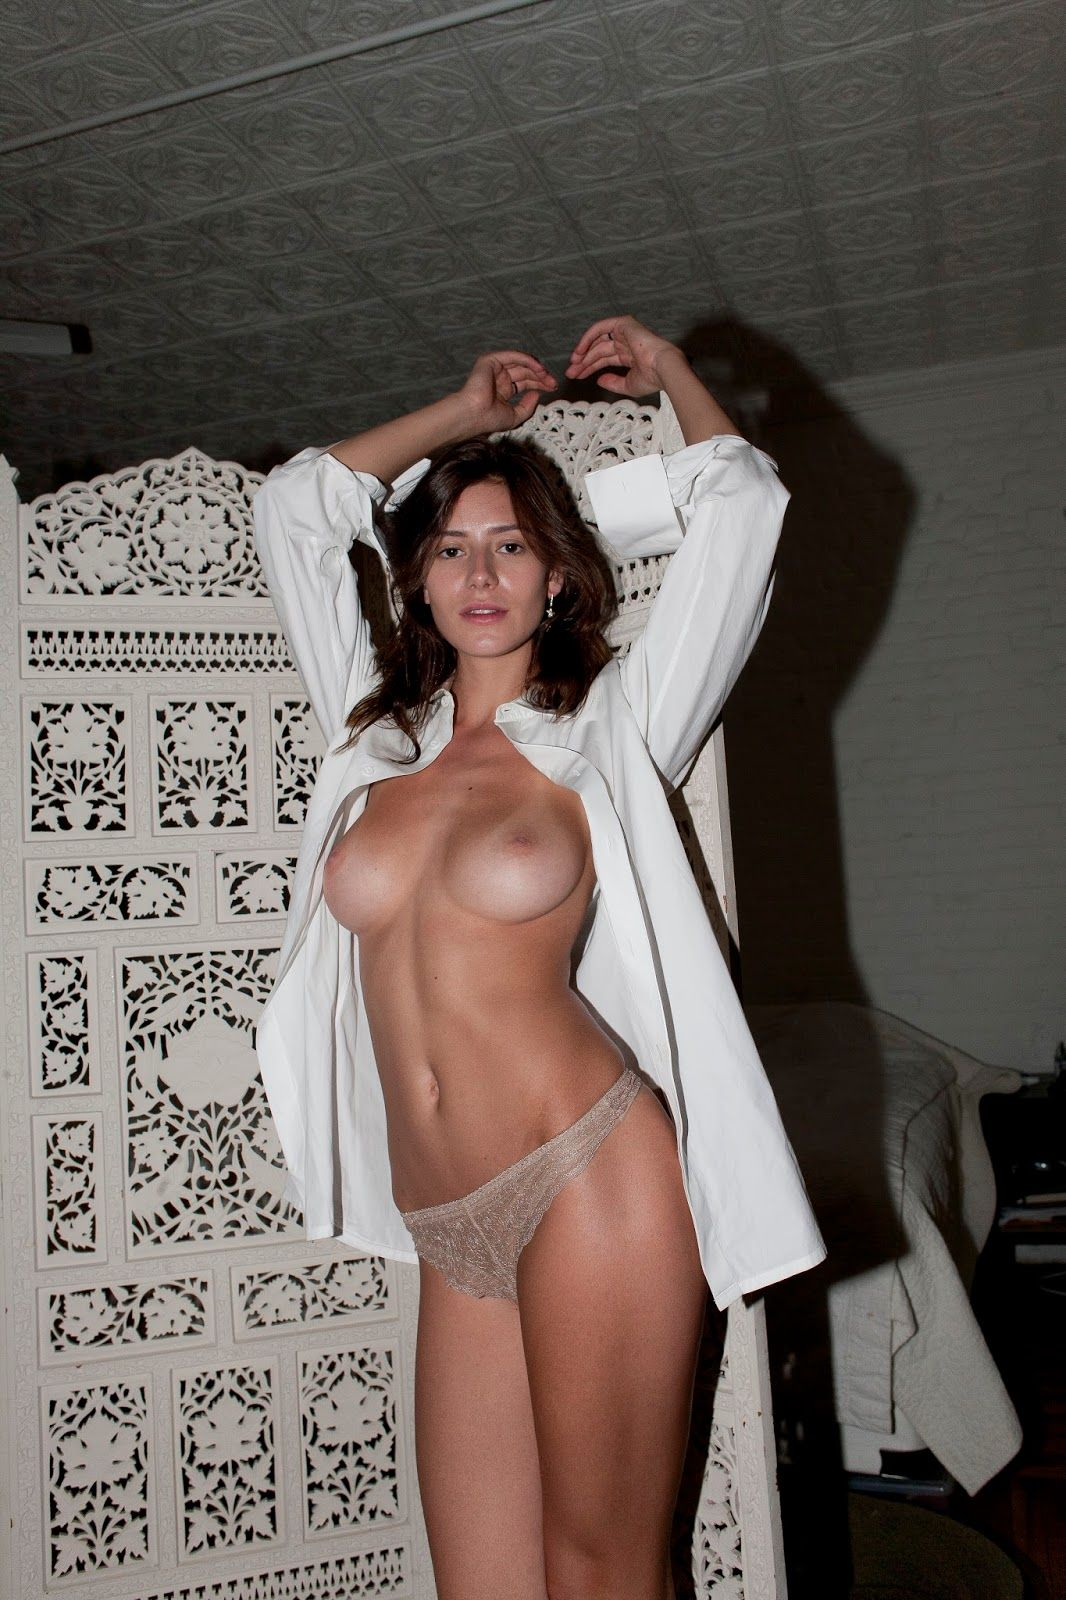 Alejandra guilmants naked in a tasteful way - 2019 year